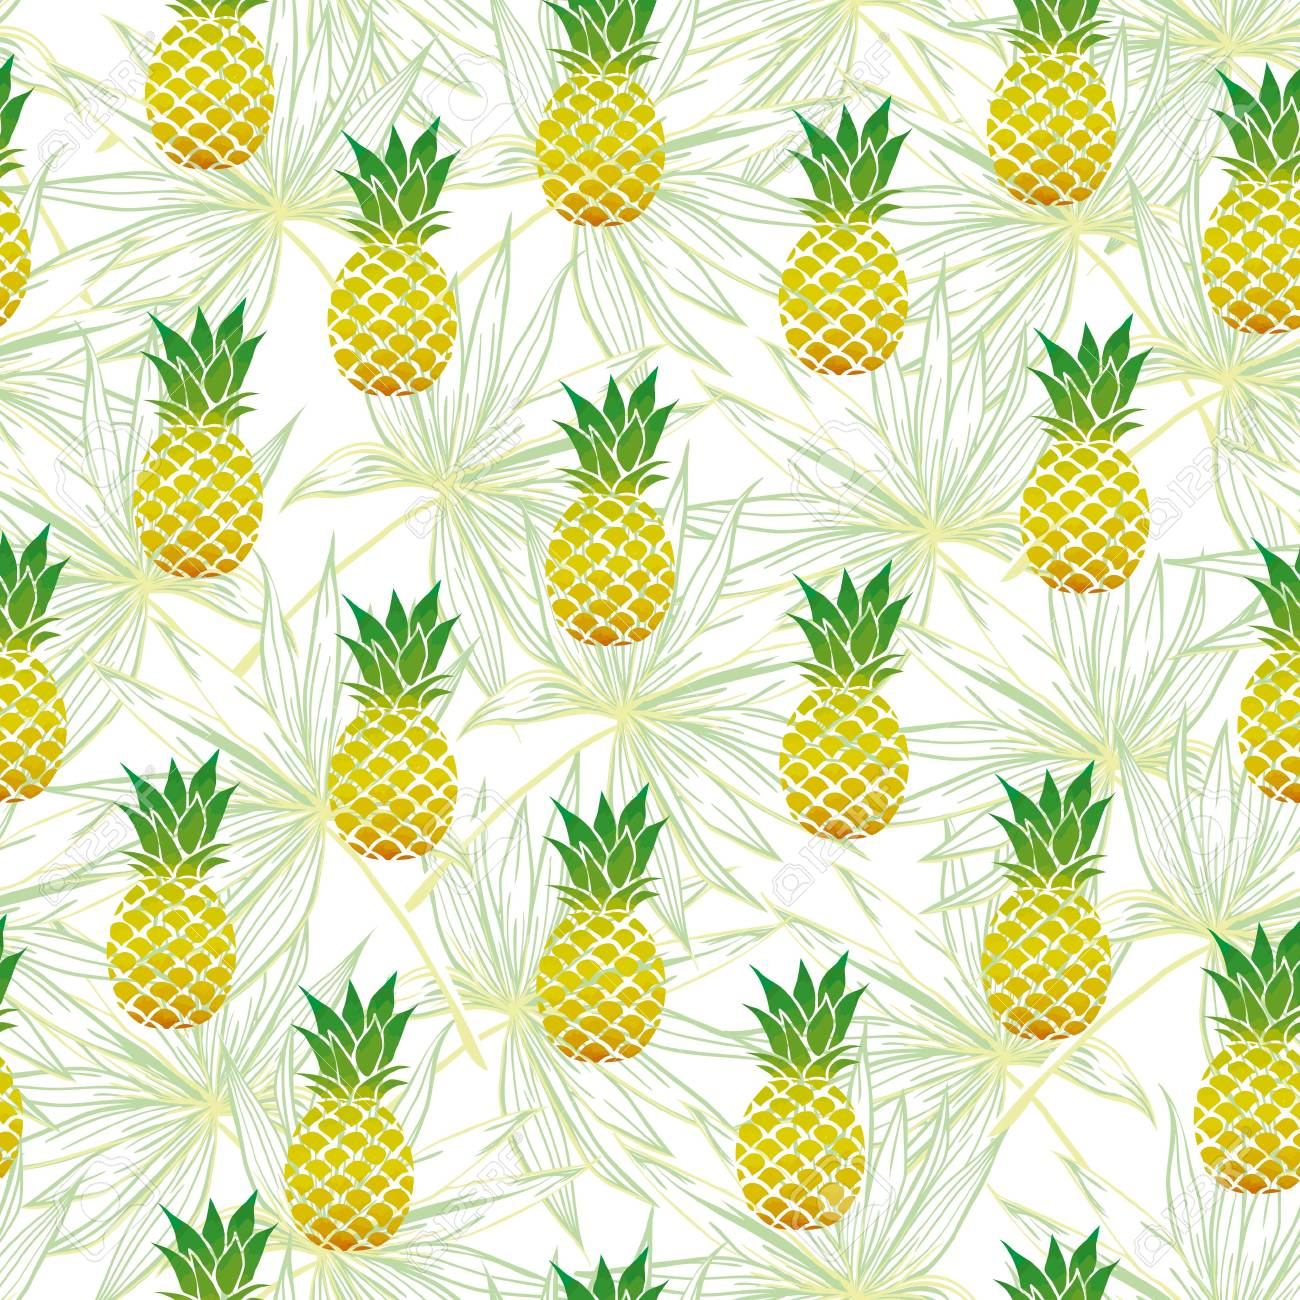 Vector Seamless Pattern with Pineapples - 95600789